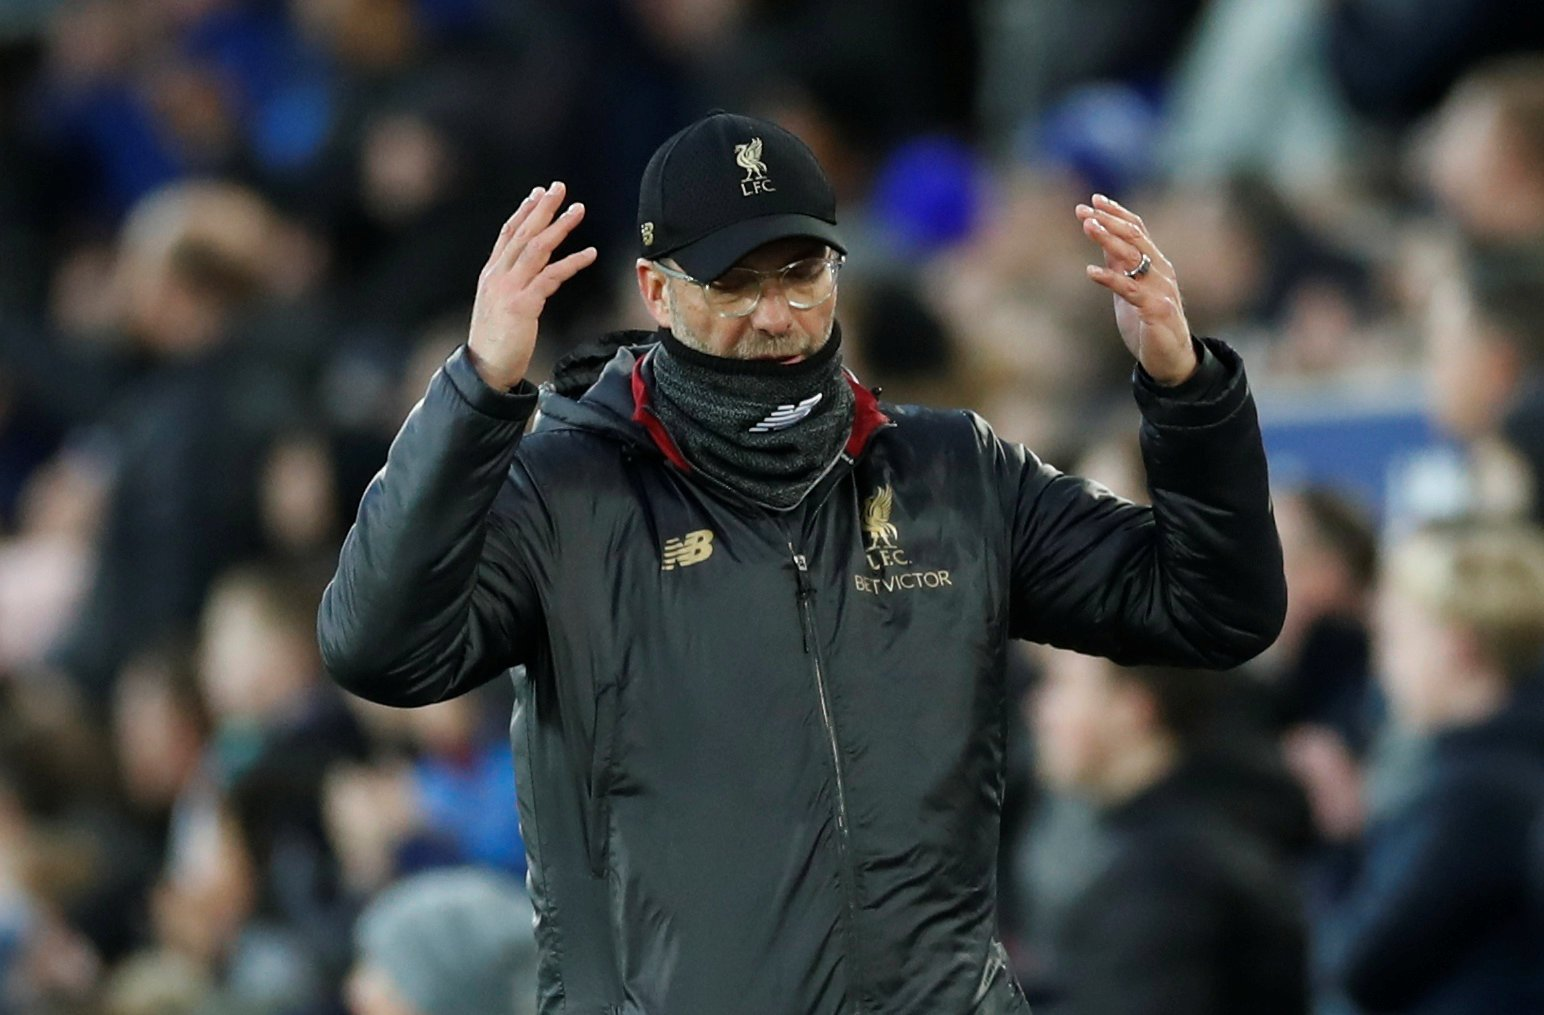 Potential consequences of Jurgen Klopp leaving Liverpool